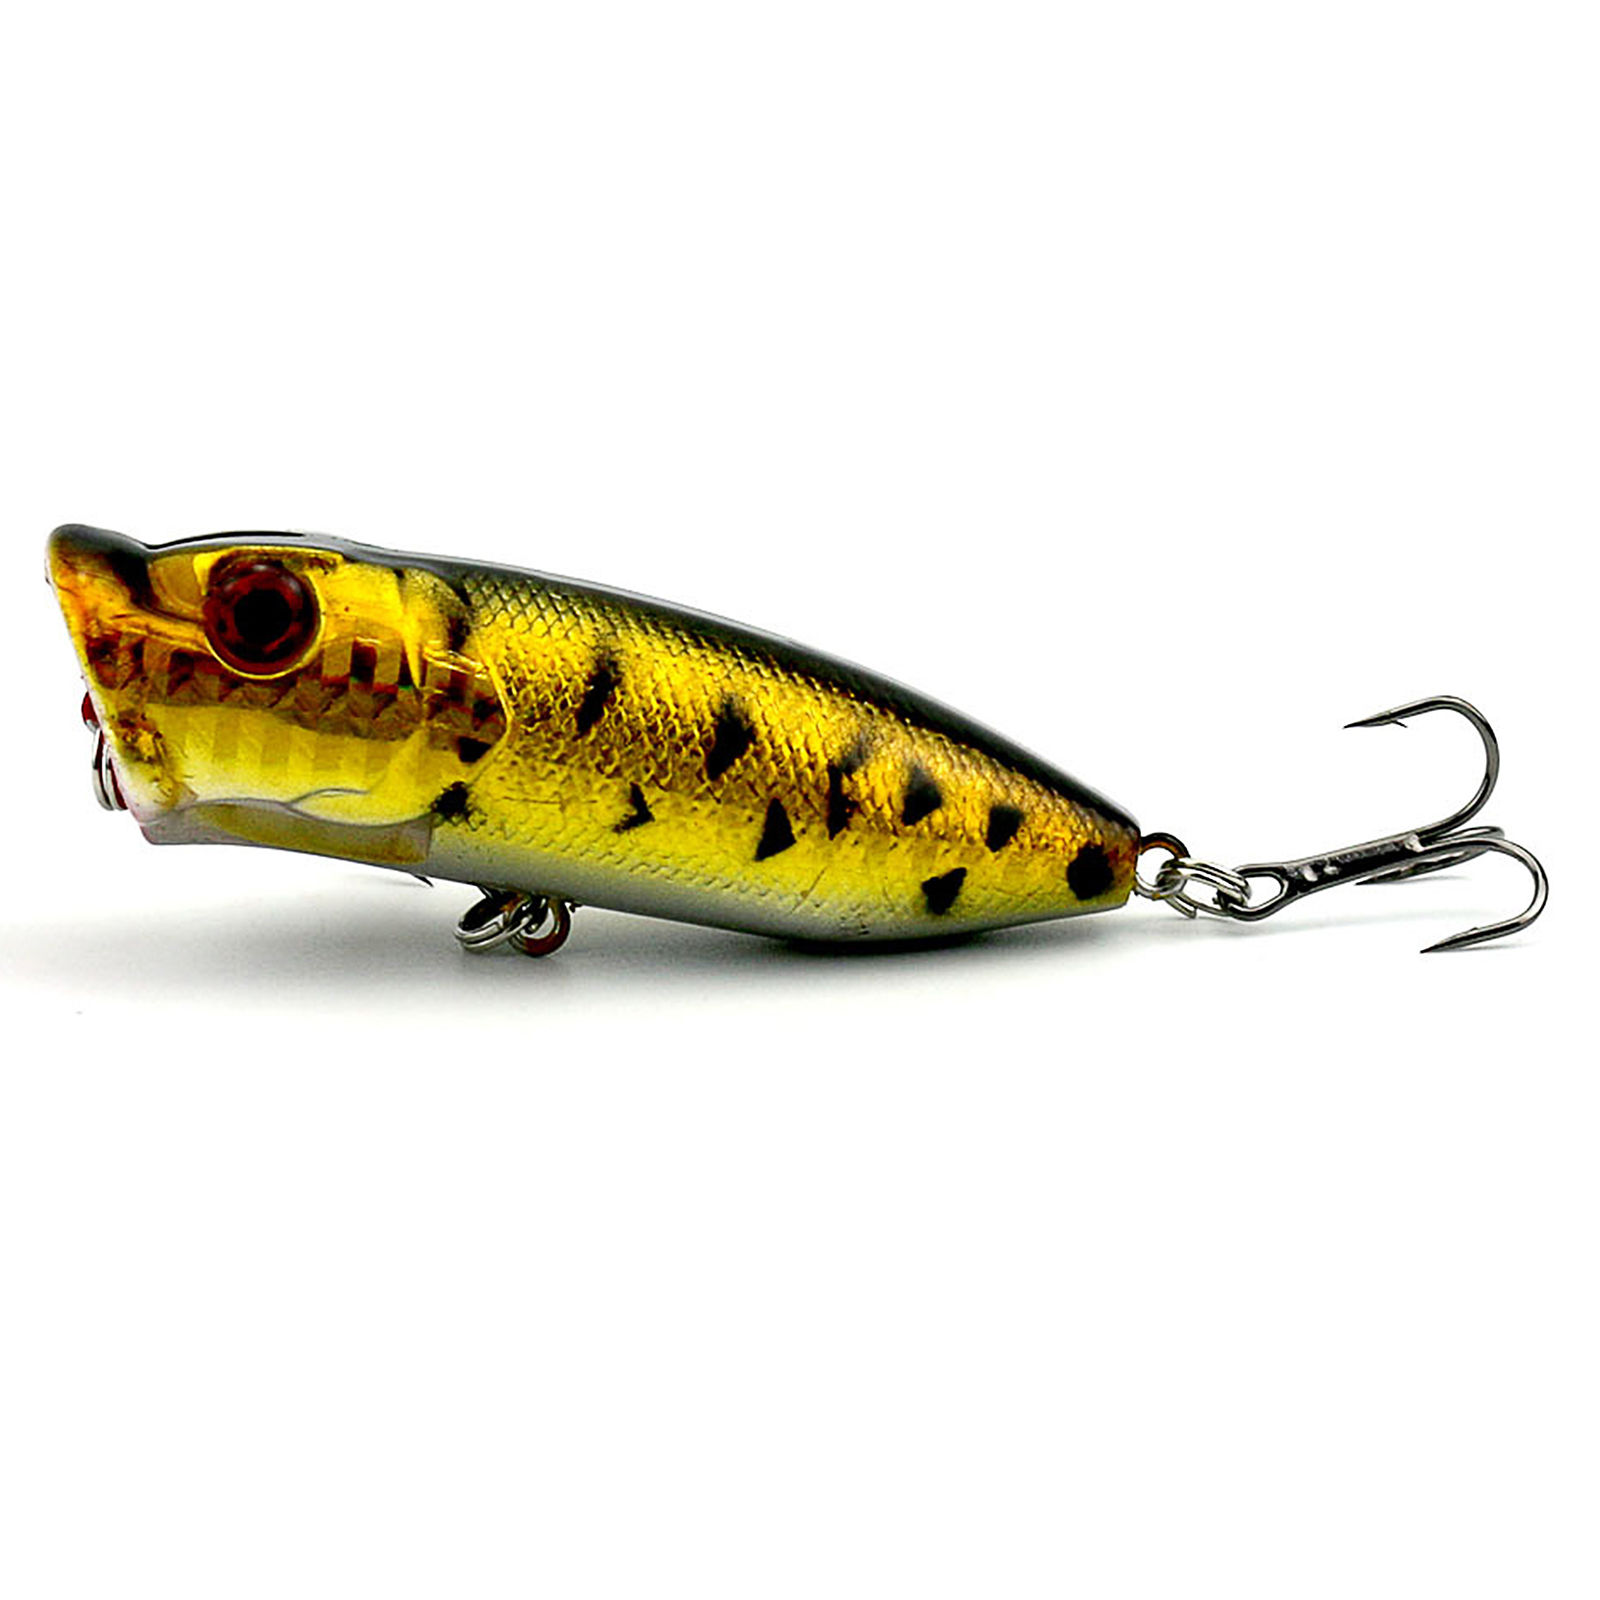 Lot of 5PCS Topwater Popper Freshwater Fishing Lures Bass ...